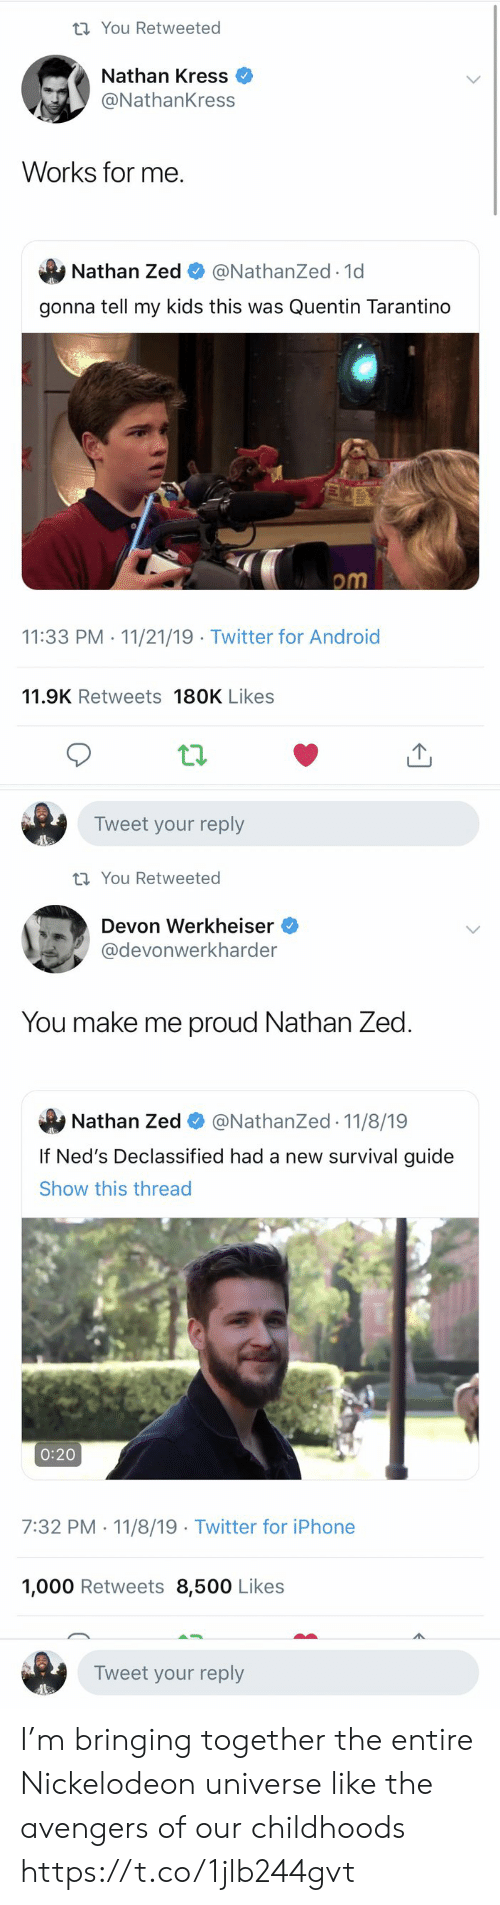 The Avengers: t You Retweeted  Nathan Kress  @NathanKress  Works for me  Nathan Zed  @NathanZed.1d  gonna tell my kids this was Quentin Tarantino  om  11:33 PM 11/21/19 Twitter for Android  .  11.9K Retweets 180K Likes  Tweet your reply   t You Retweeted  Devon Werkheiser  @devonwerkharder  You make me proud Nathan Zed  @NathanZed 11/8/19  Nathan Zed  If Ned's Declassified had a new survival guide  Show this thread  0:20  7:32 PM 11/8/19 Twitter for iPhone  1,000 Retweets 8,500 Likes  Tweet your reply I'm bringing together the entire Nickelodeon universe like the avengers of our childhoods https://t.co/1jlb244gvt